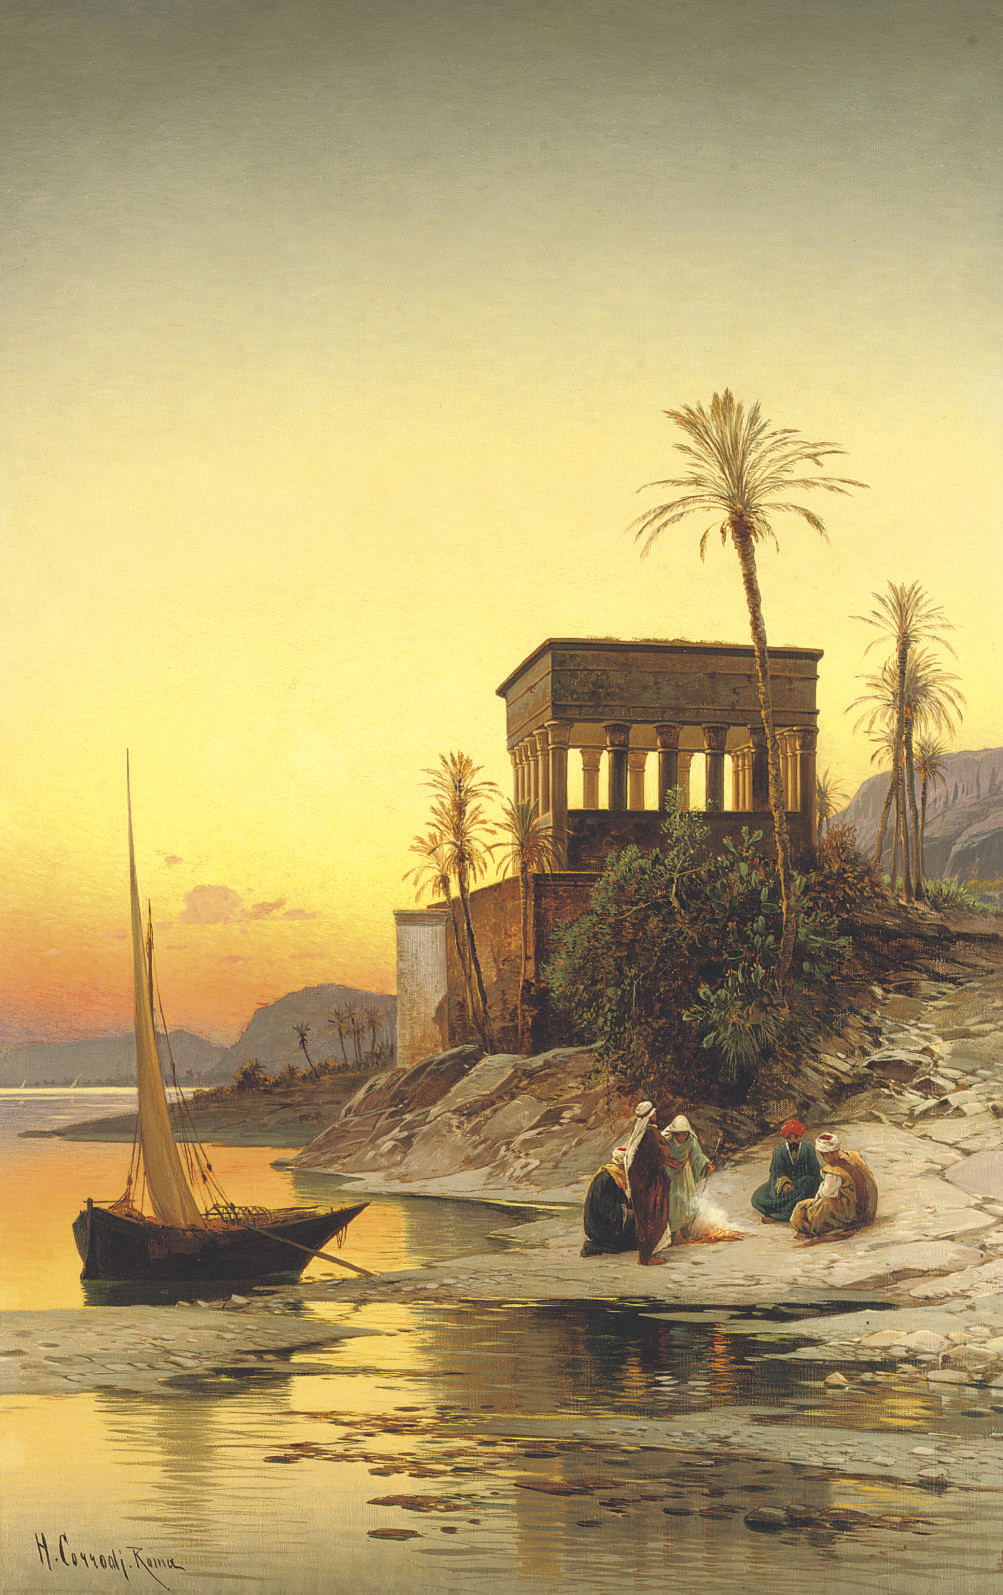 Kiosk of Trajan, Philae on the Nile